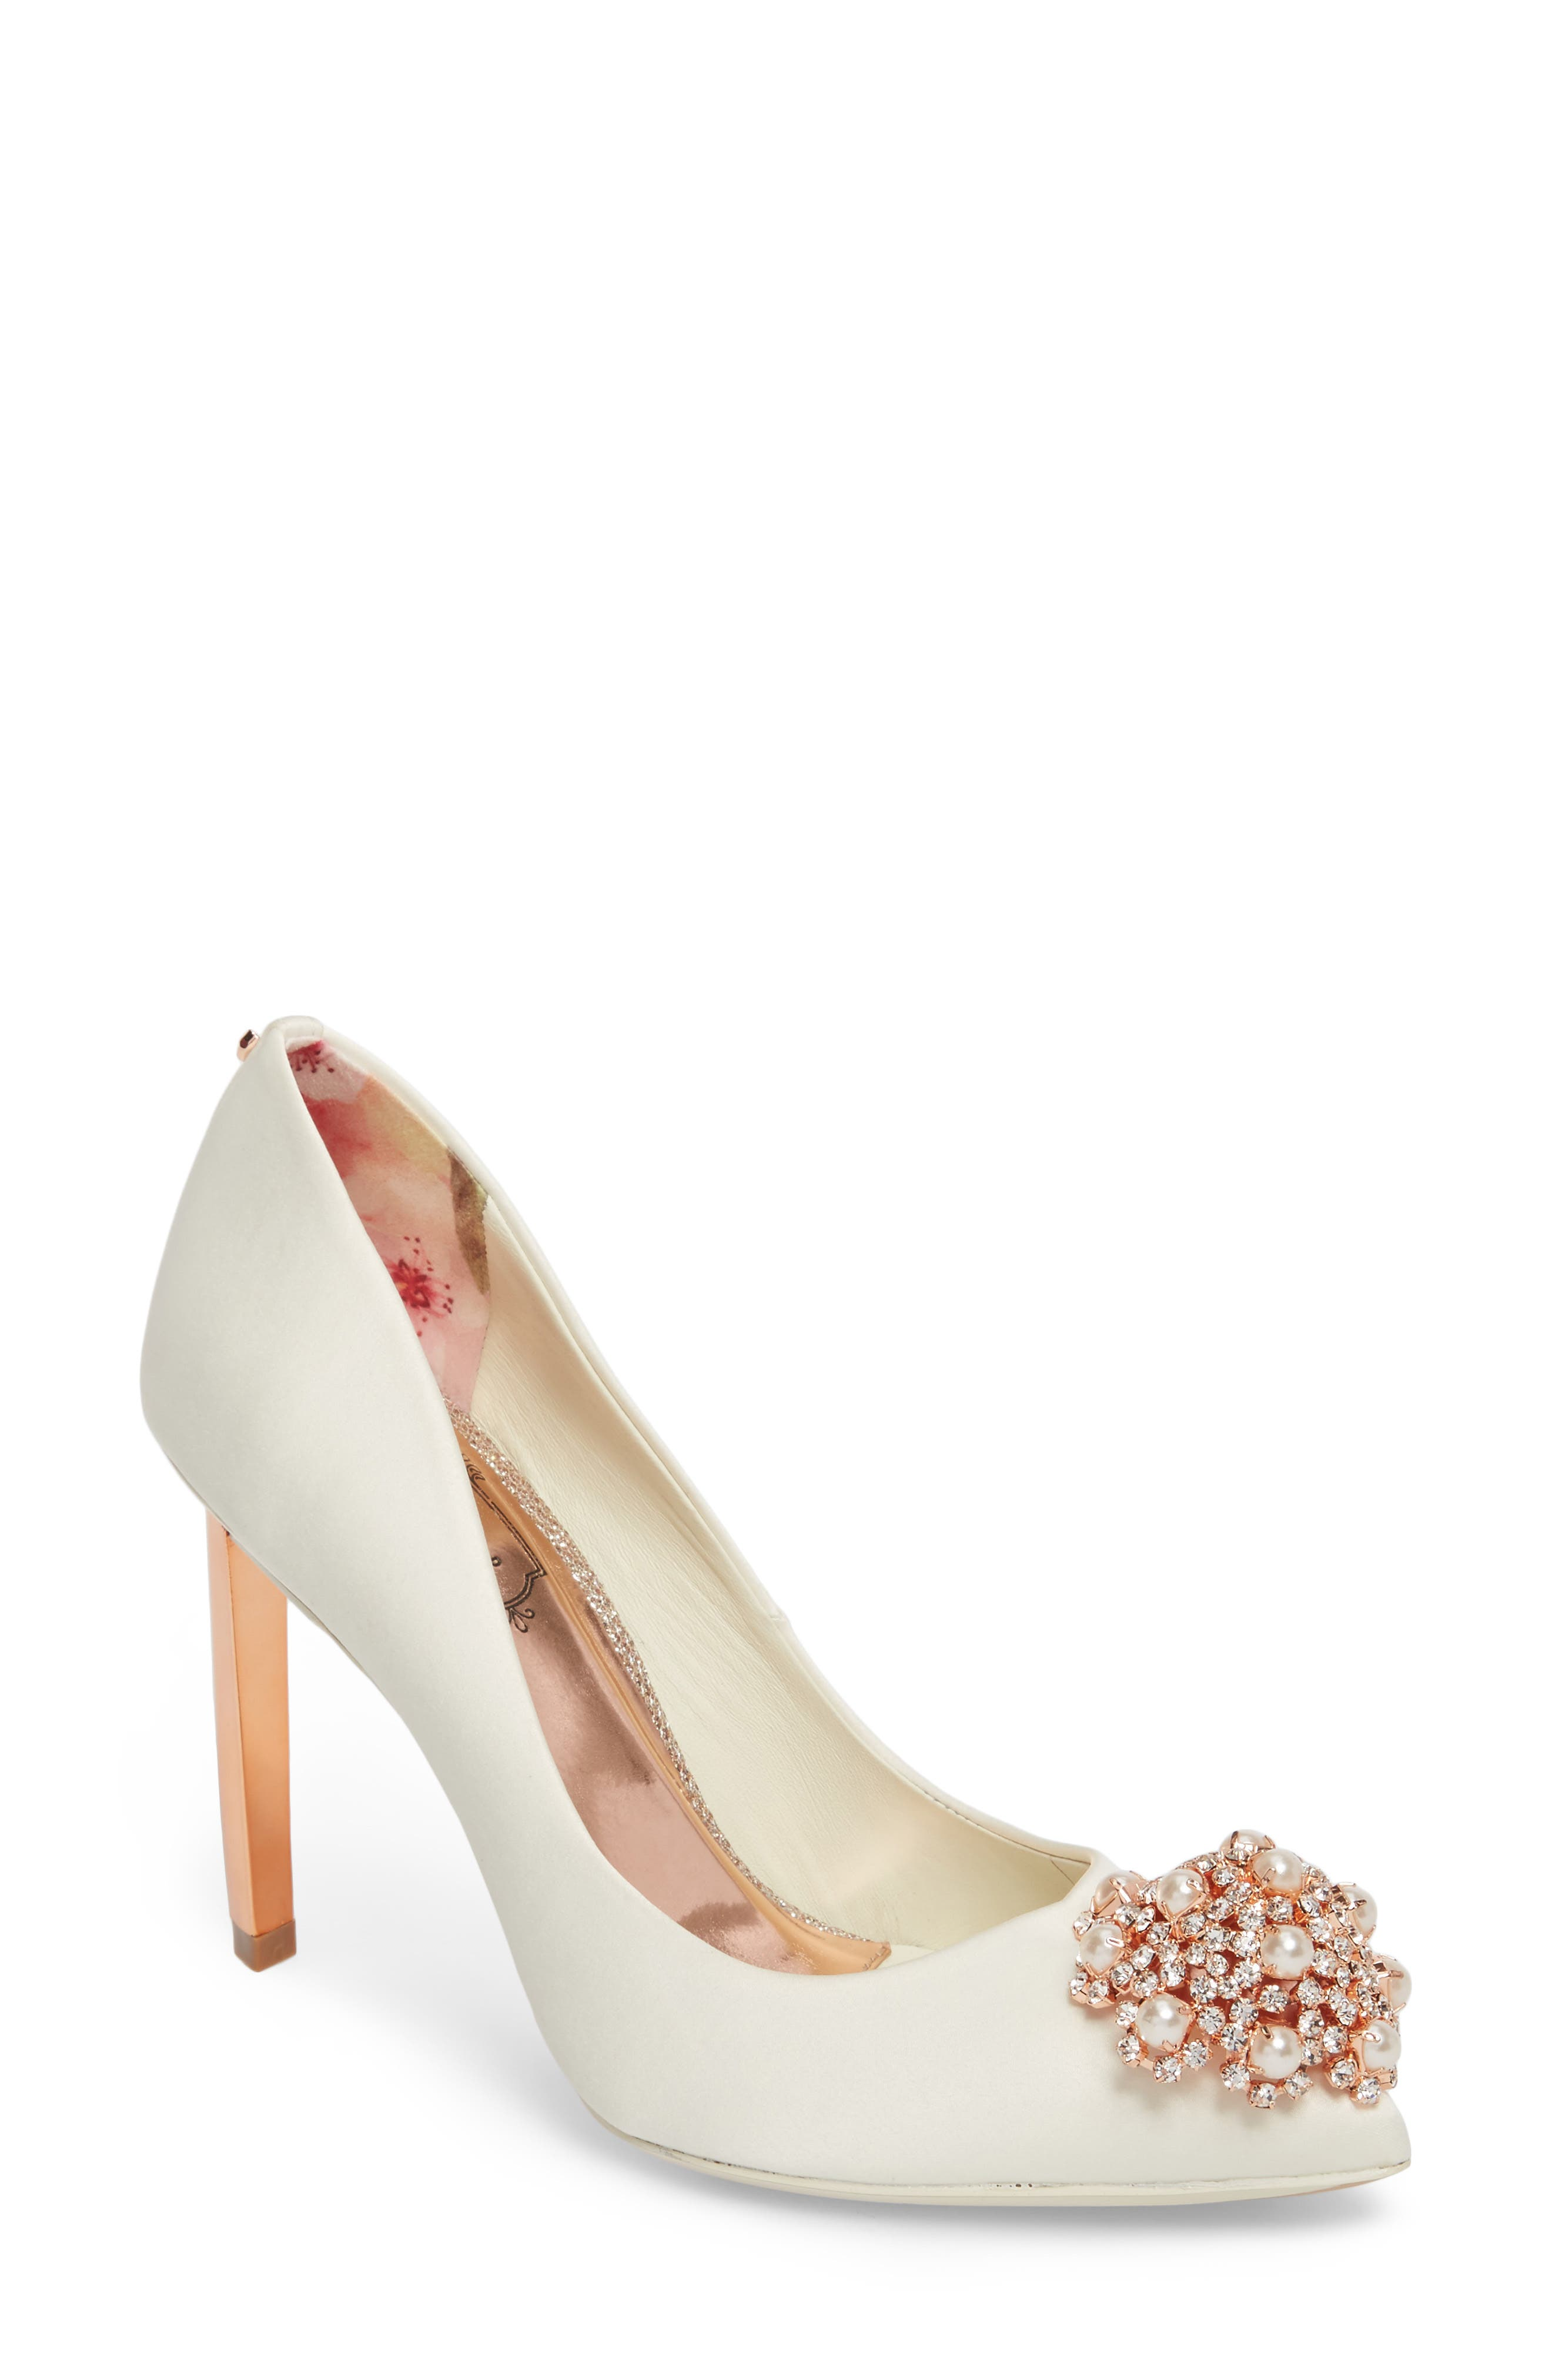 'Peetch' Pointy Toe Pump,                             Main thumbnail 1, color,                             Ivory Satin